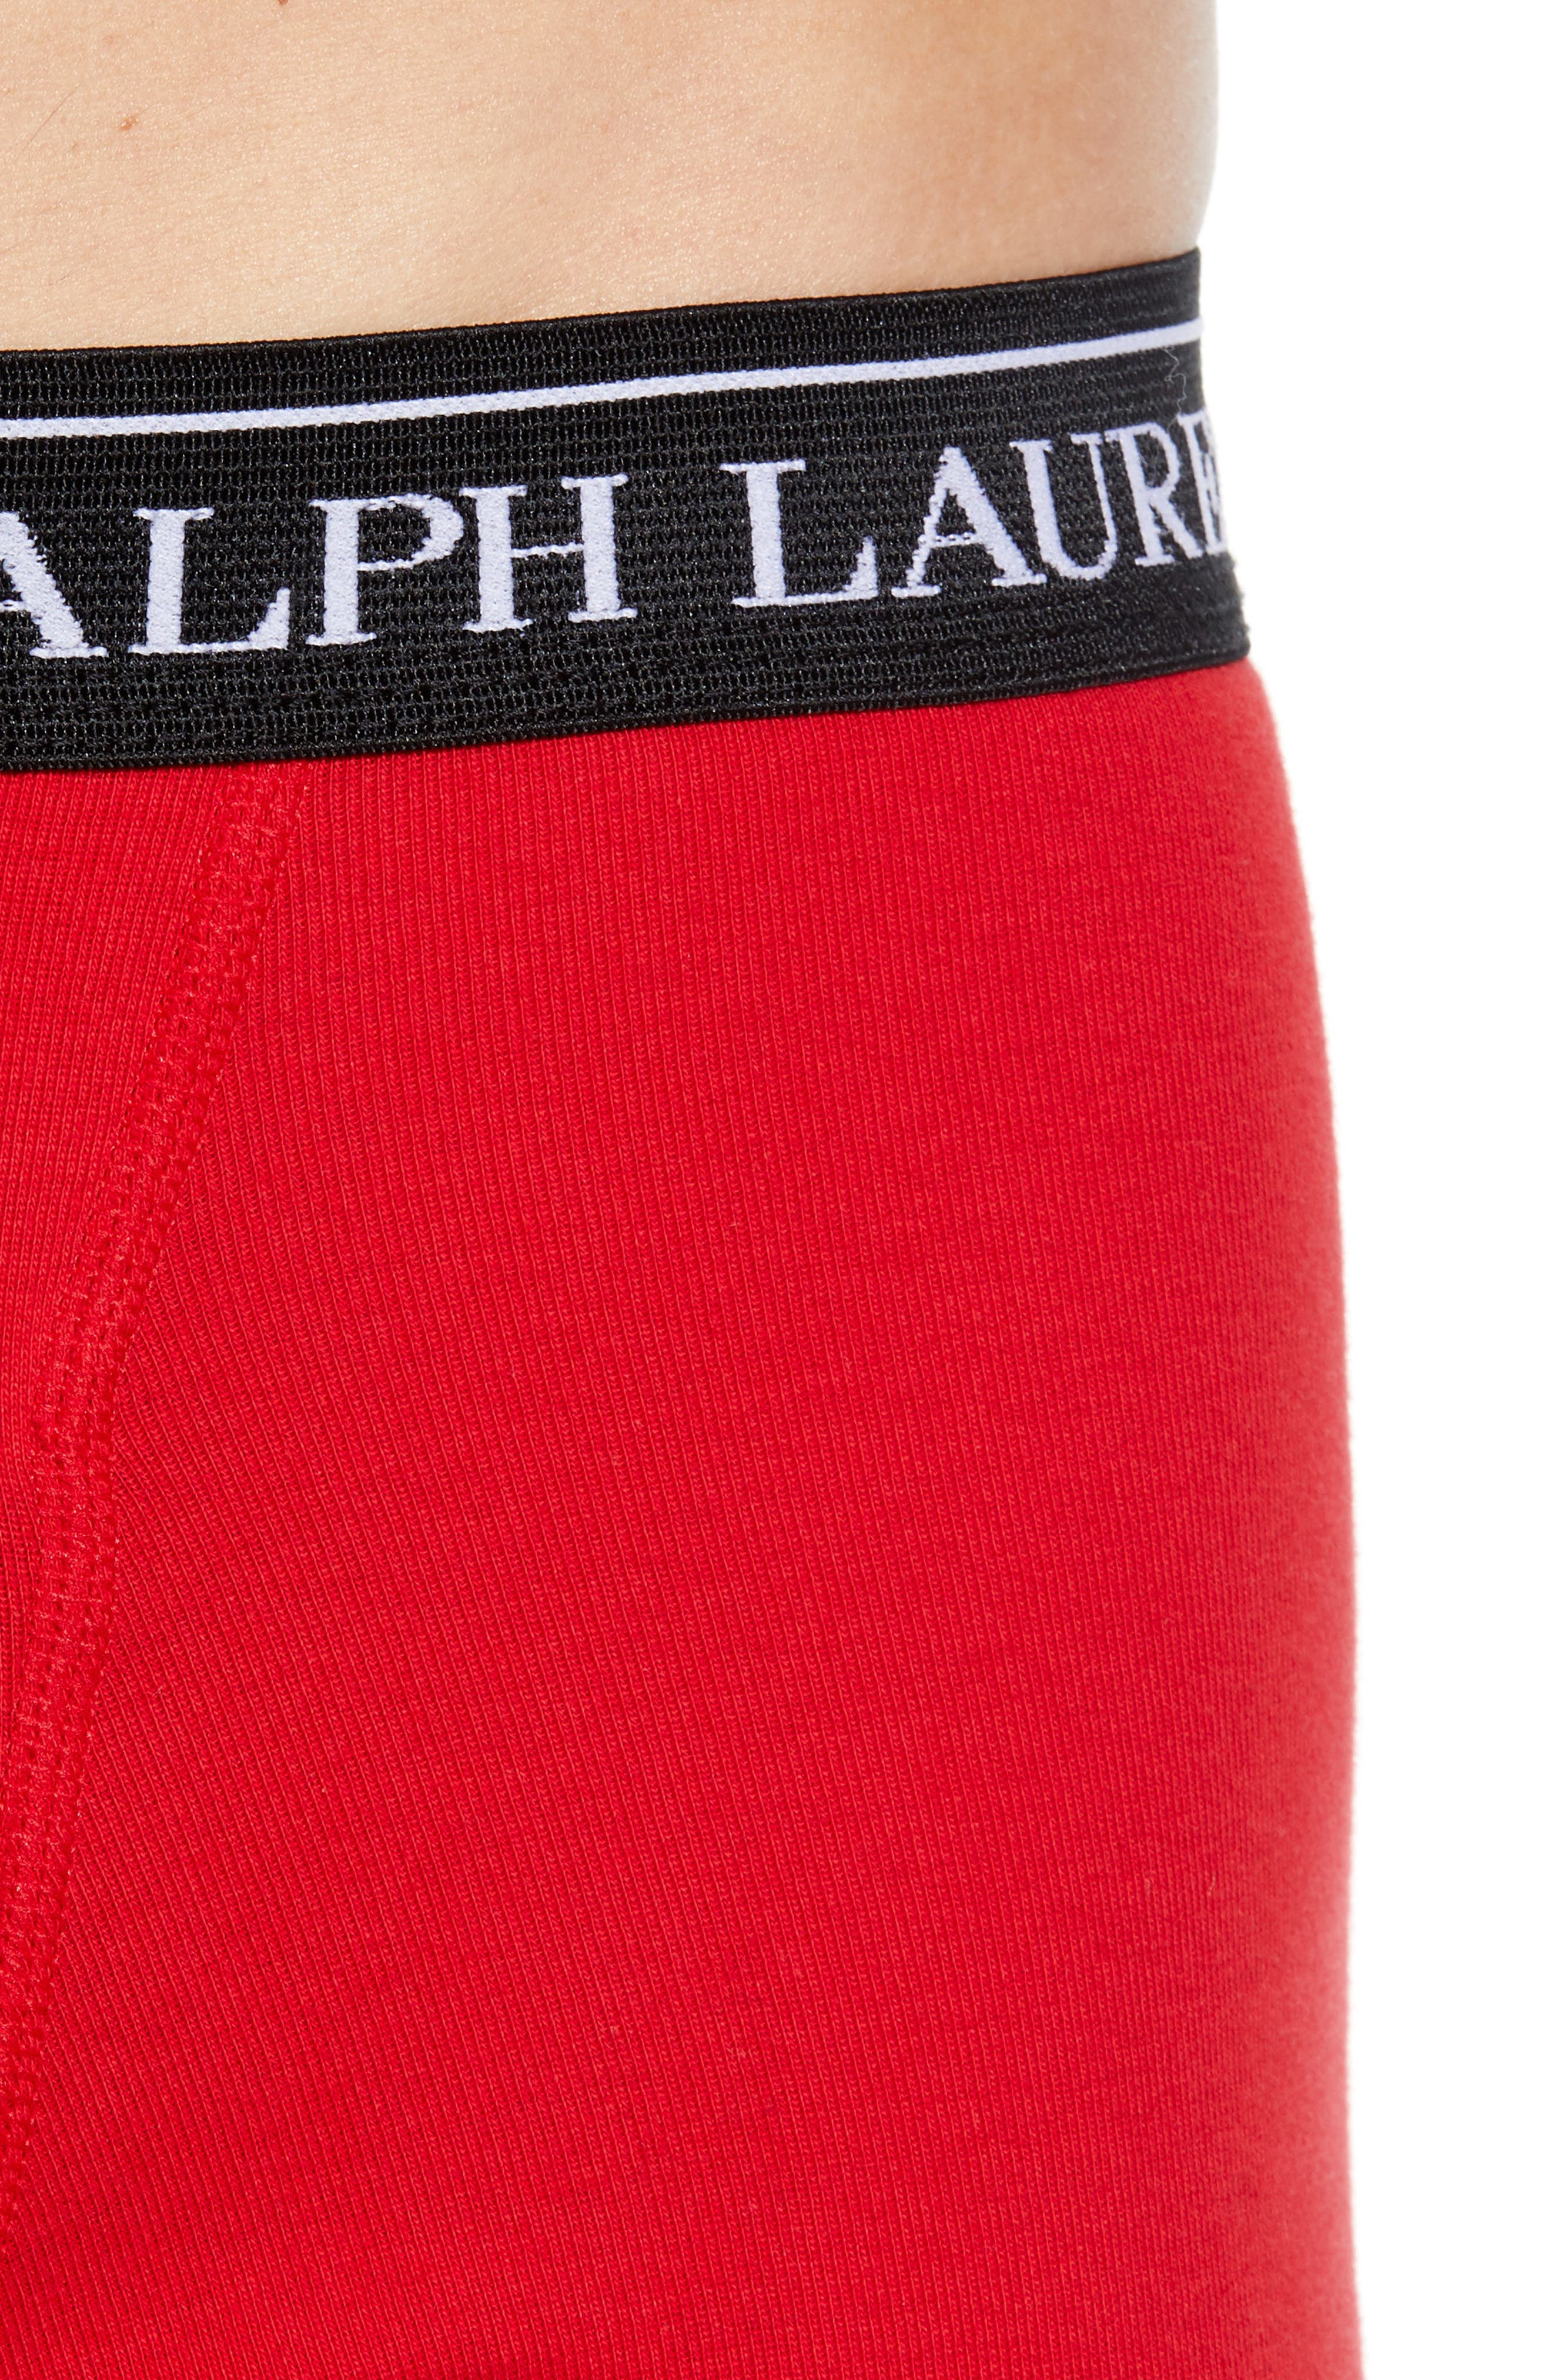 5-Pack Cotton Boxer Briefs,                             Alternate thumbnail 5, color,                             ANDOVER HEATHER/ RED/ BLACK